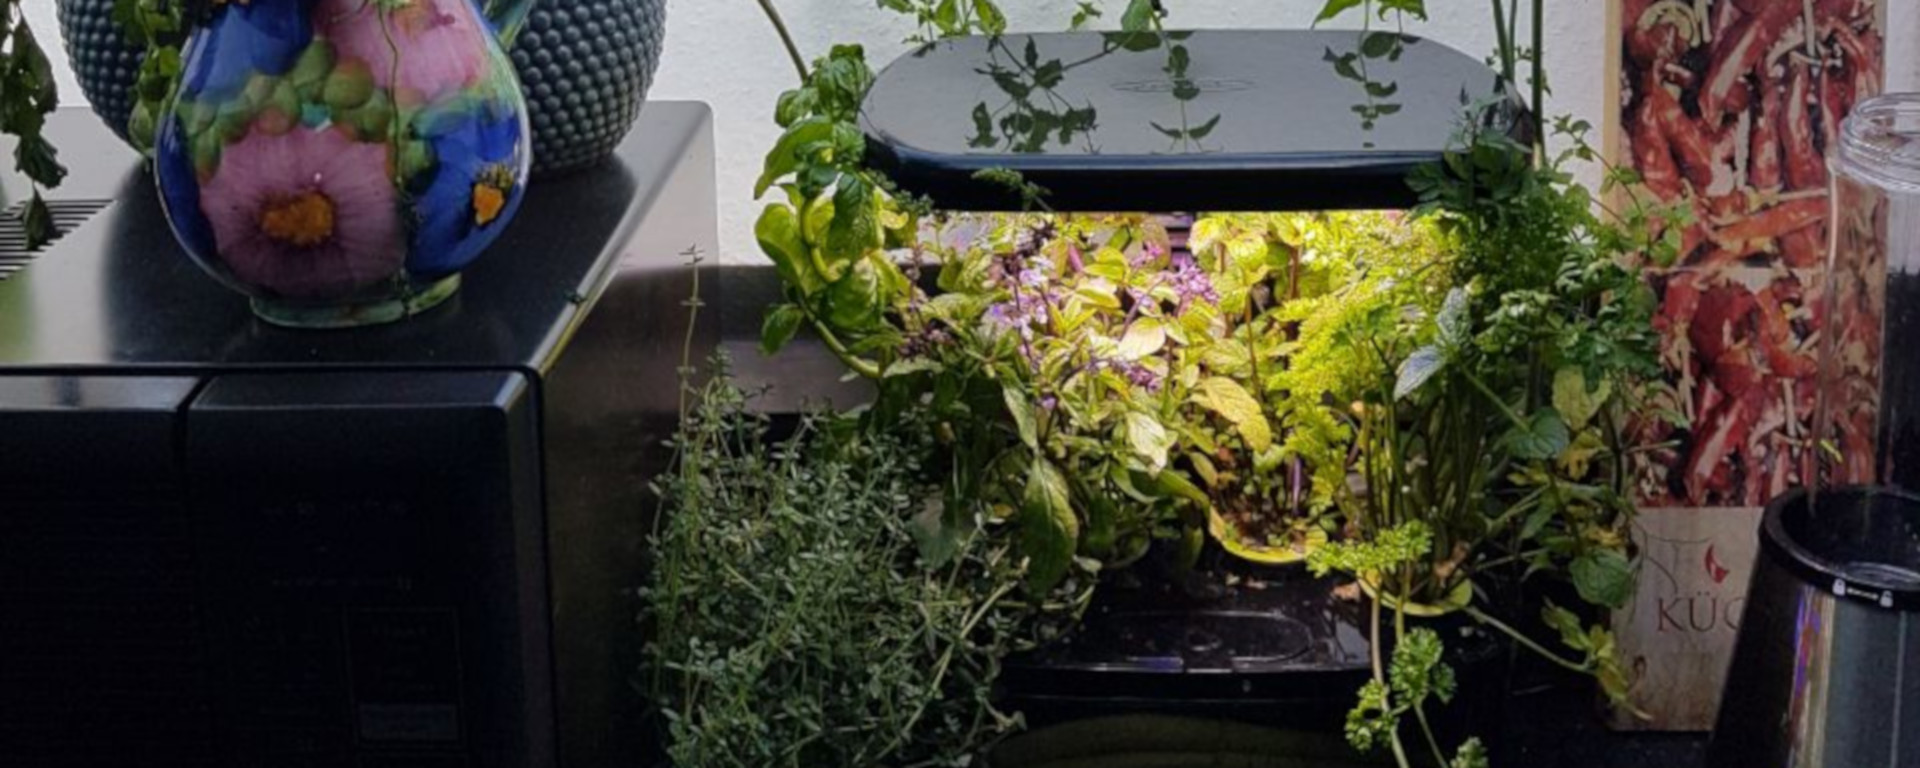 Growing Herbs, Vegetables And Plants